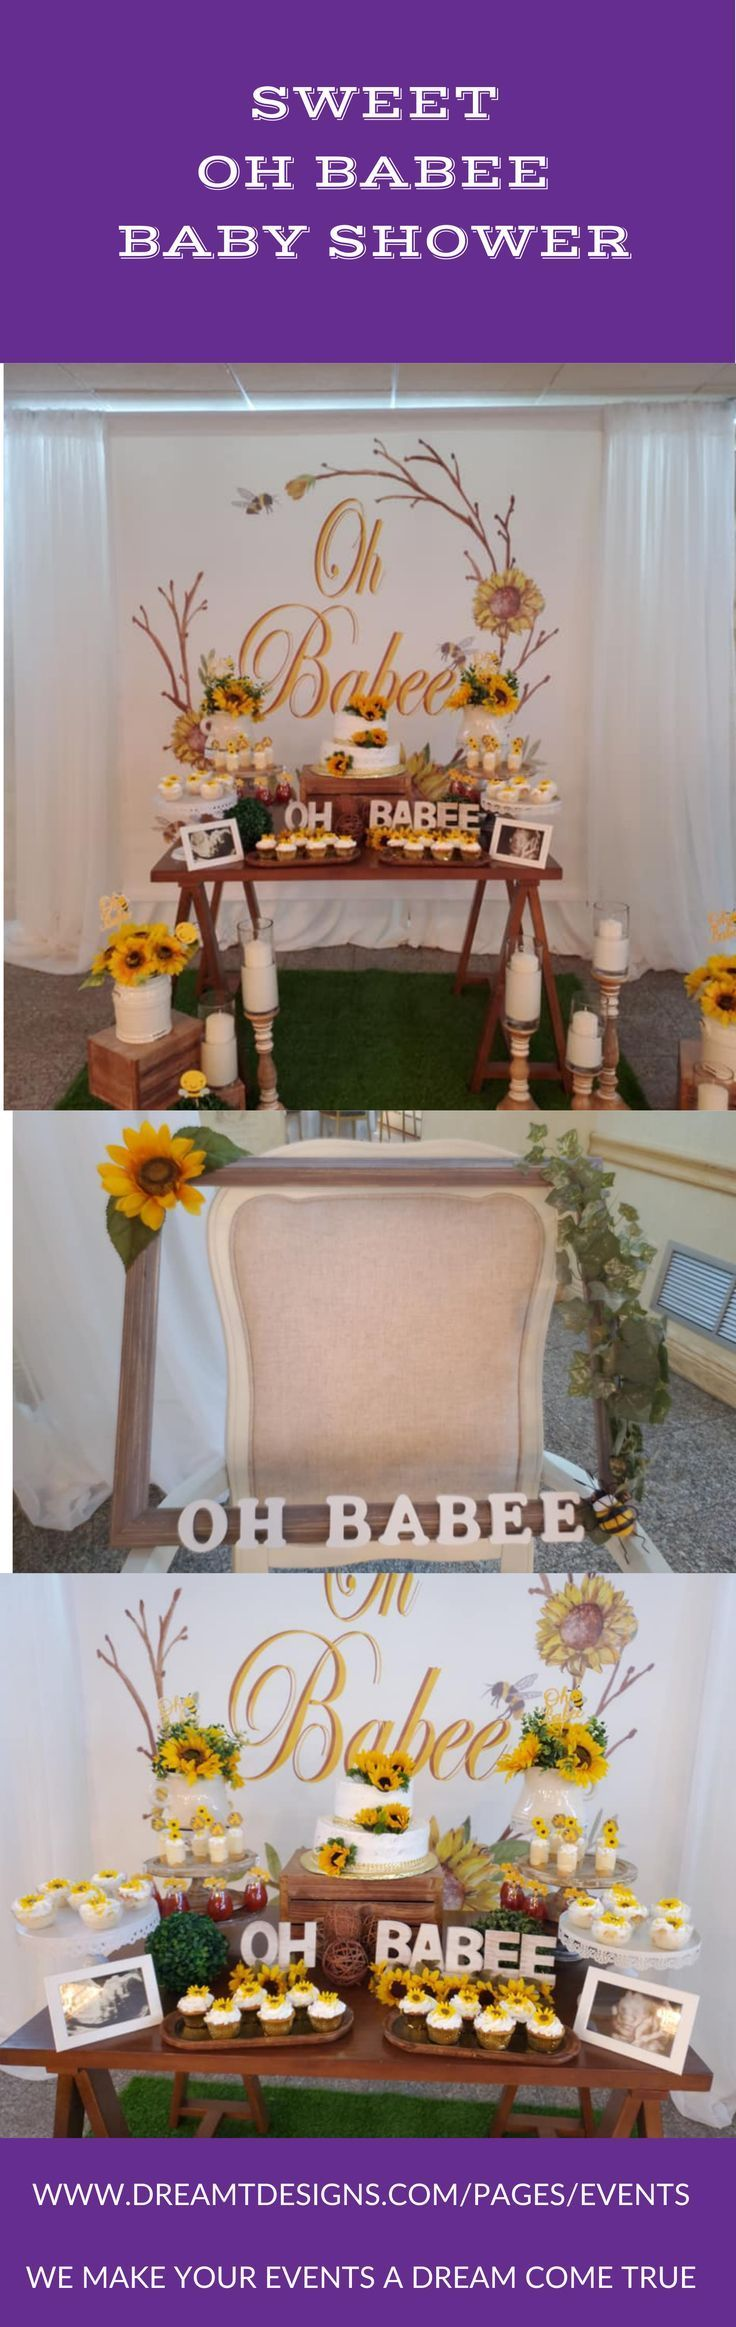 How To Make A Photo Frame Prop For Baby Shower : photo, frame, shower, Creative, Shower, Theme, Backdrop, Table, Photo, Frame, Board., And…, Themes,, Shower,